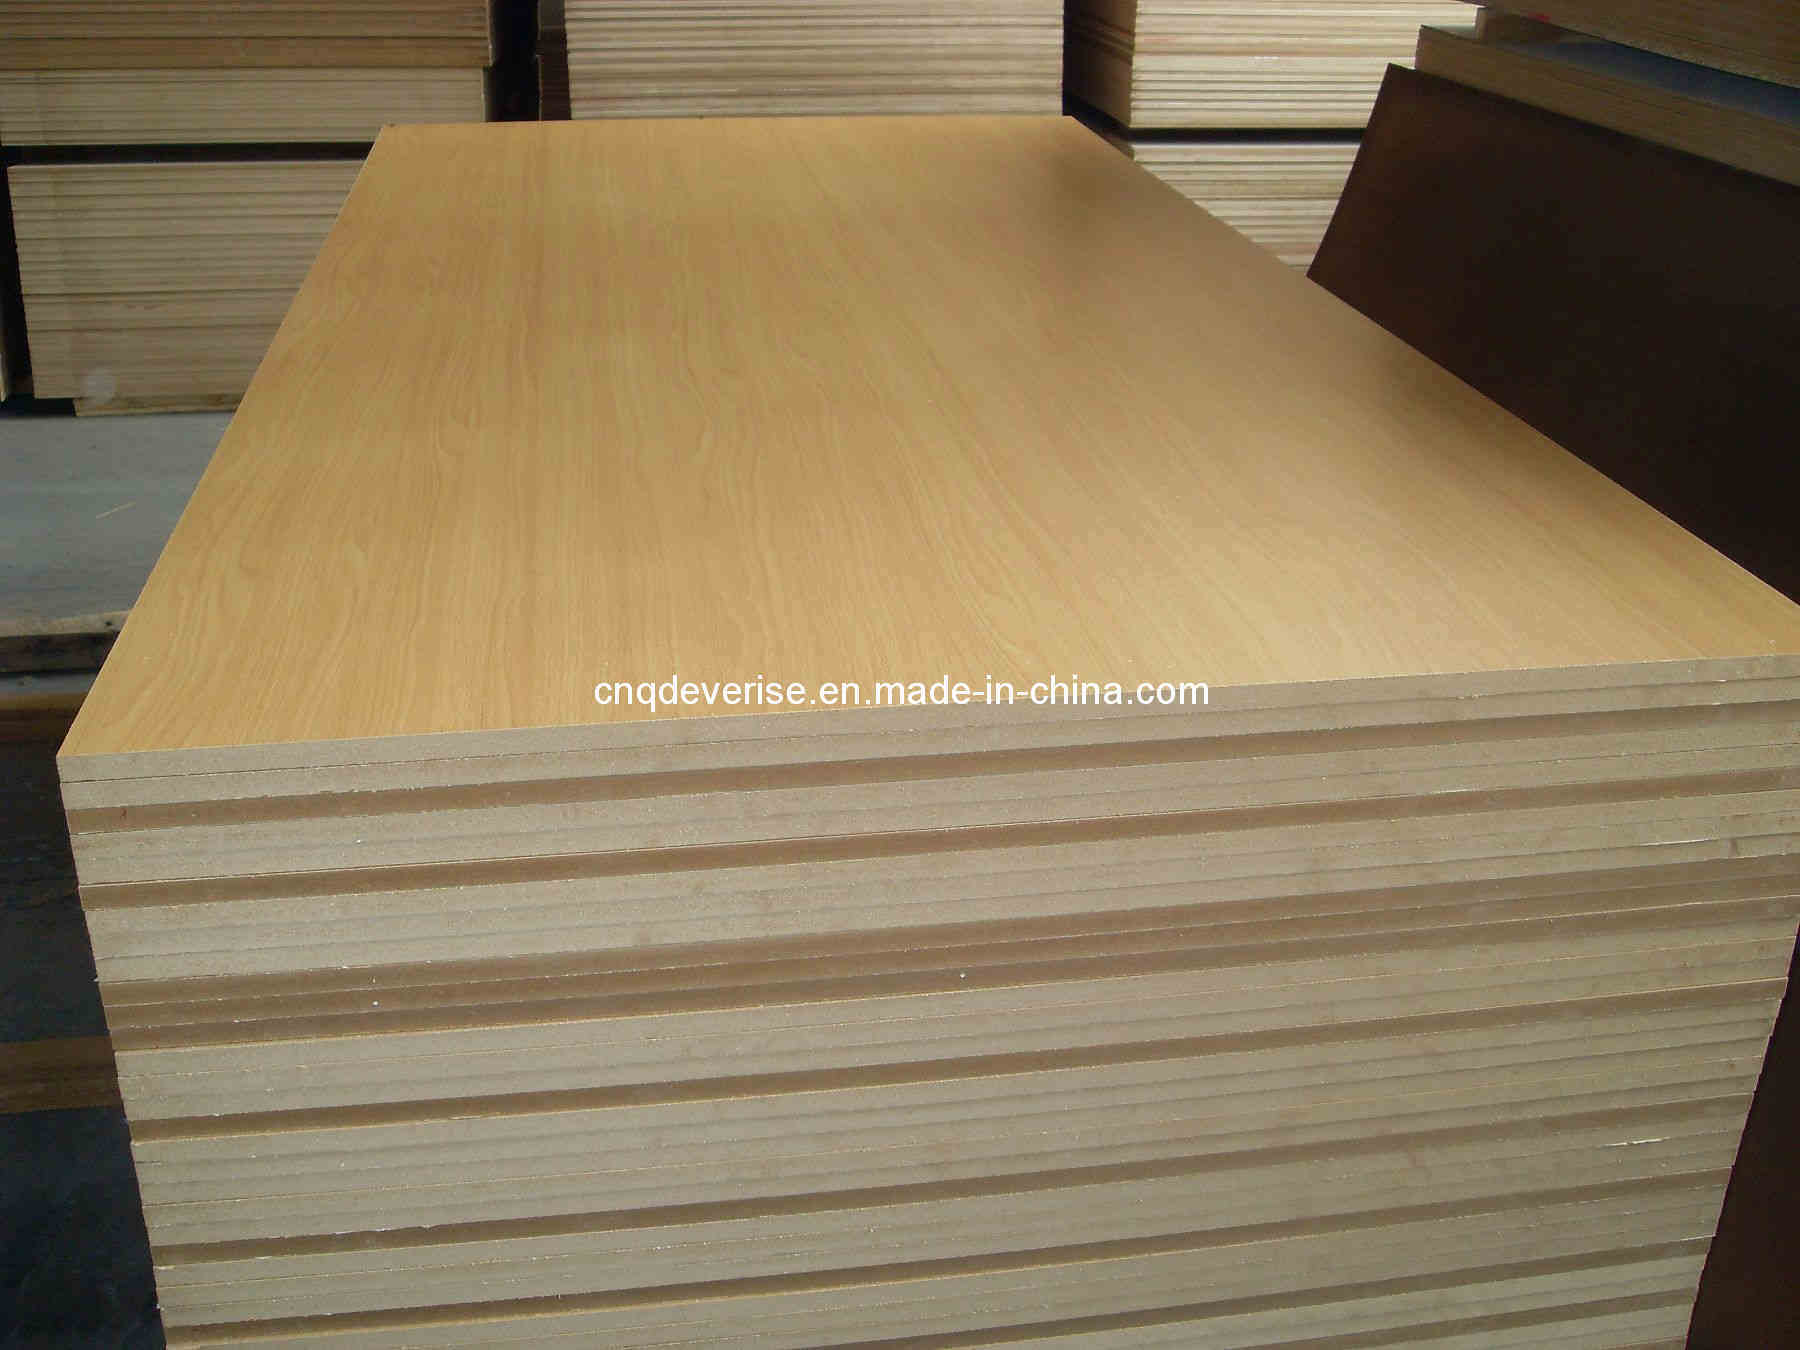 China raw mdf plain memamine wood board